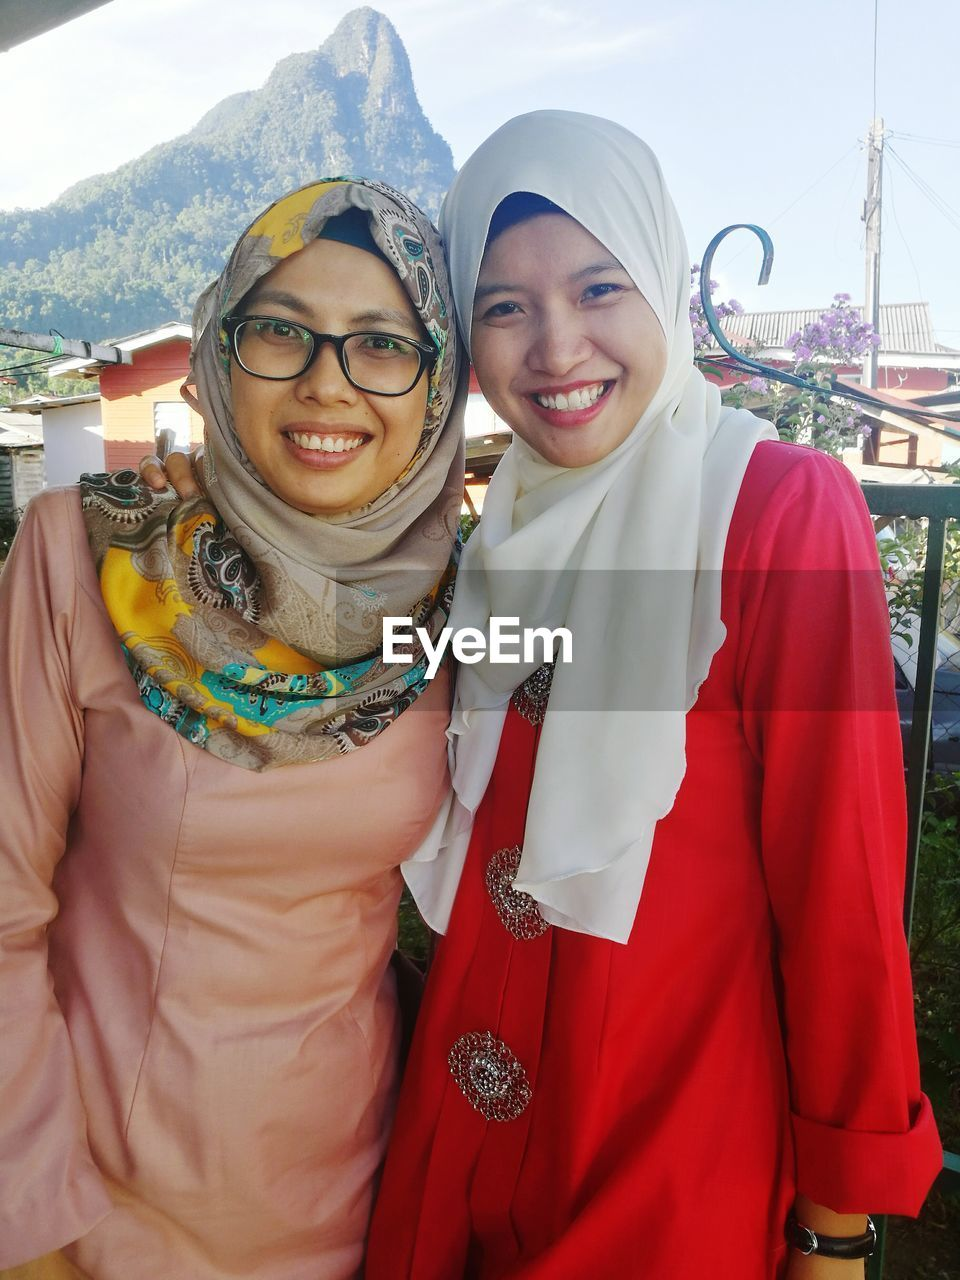 real people, looking at camera, traditional clothing, smiling, lifestyles, togetherness, happiness, portrait, standing, leisure activity, two people, outdoors, young women, day, front view, young adult, celebration, bonding